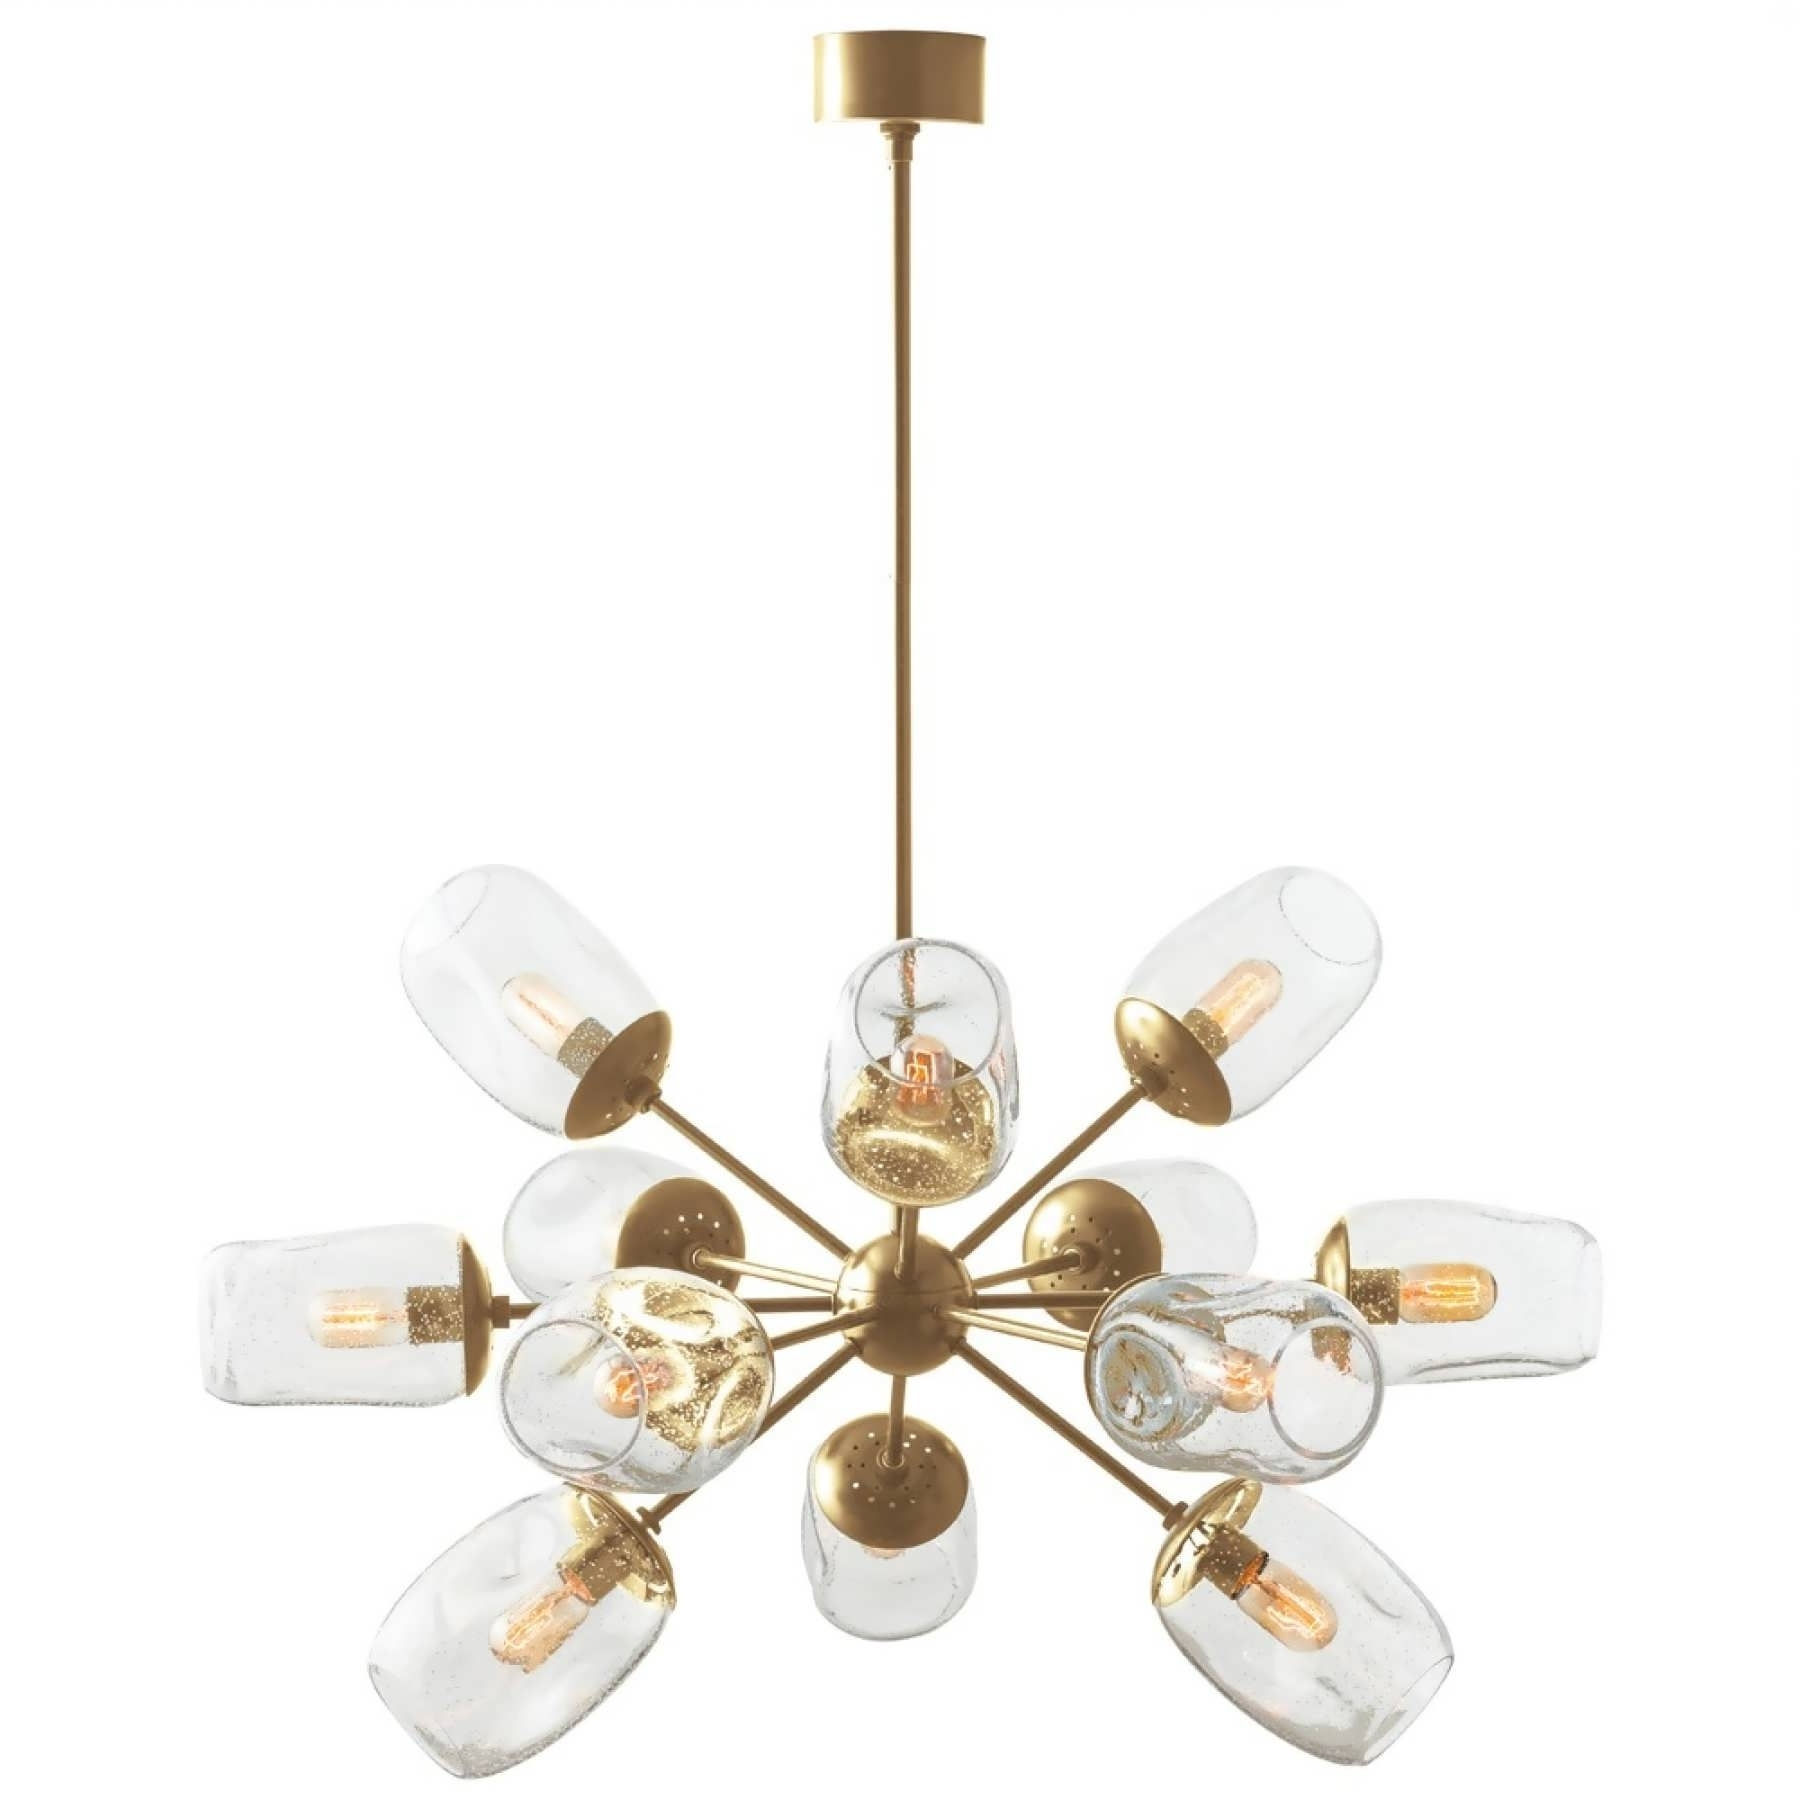 Gold Modern Chandelier For Popular Chandeliers Design : Marvelous Dining Room Chandeliers Large Modern (View 15 of 20)